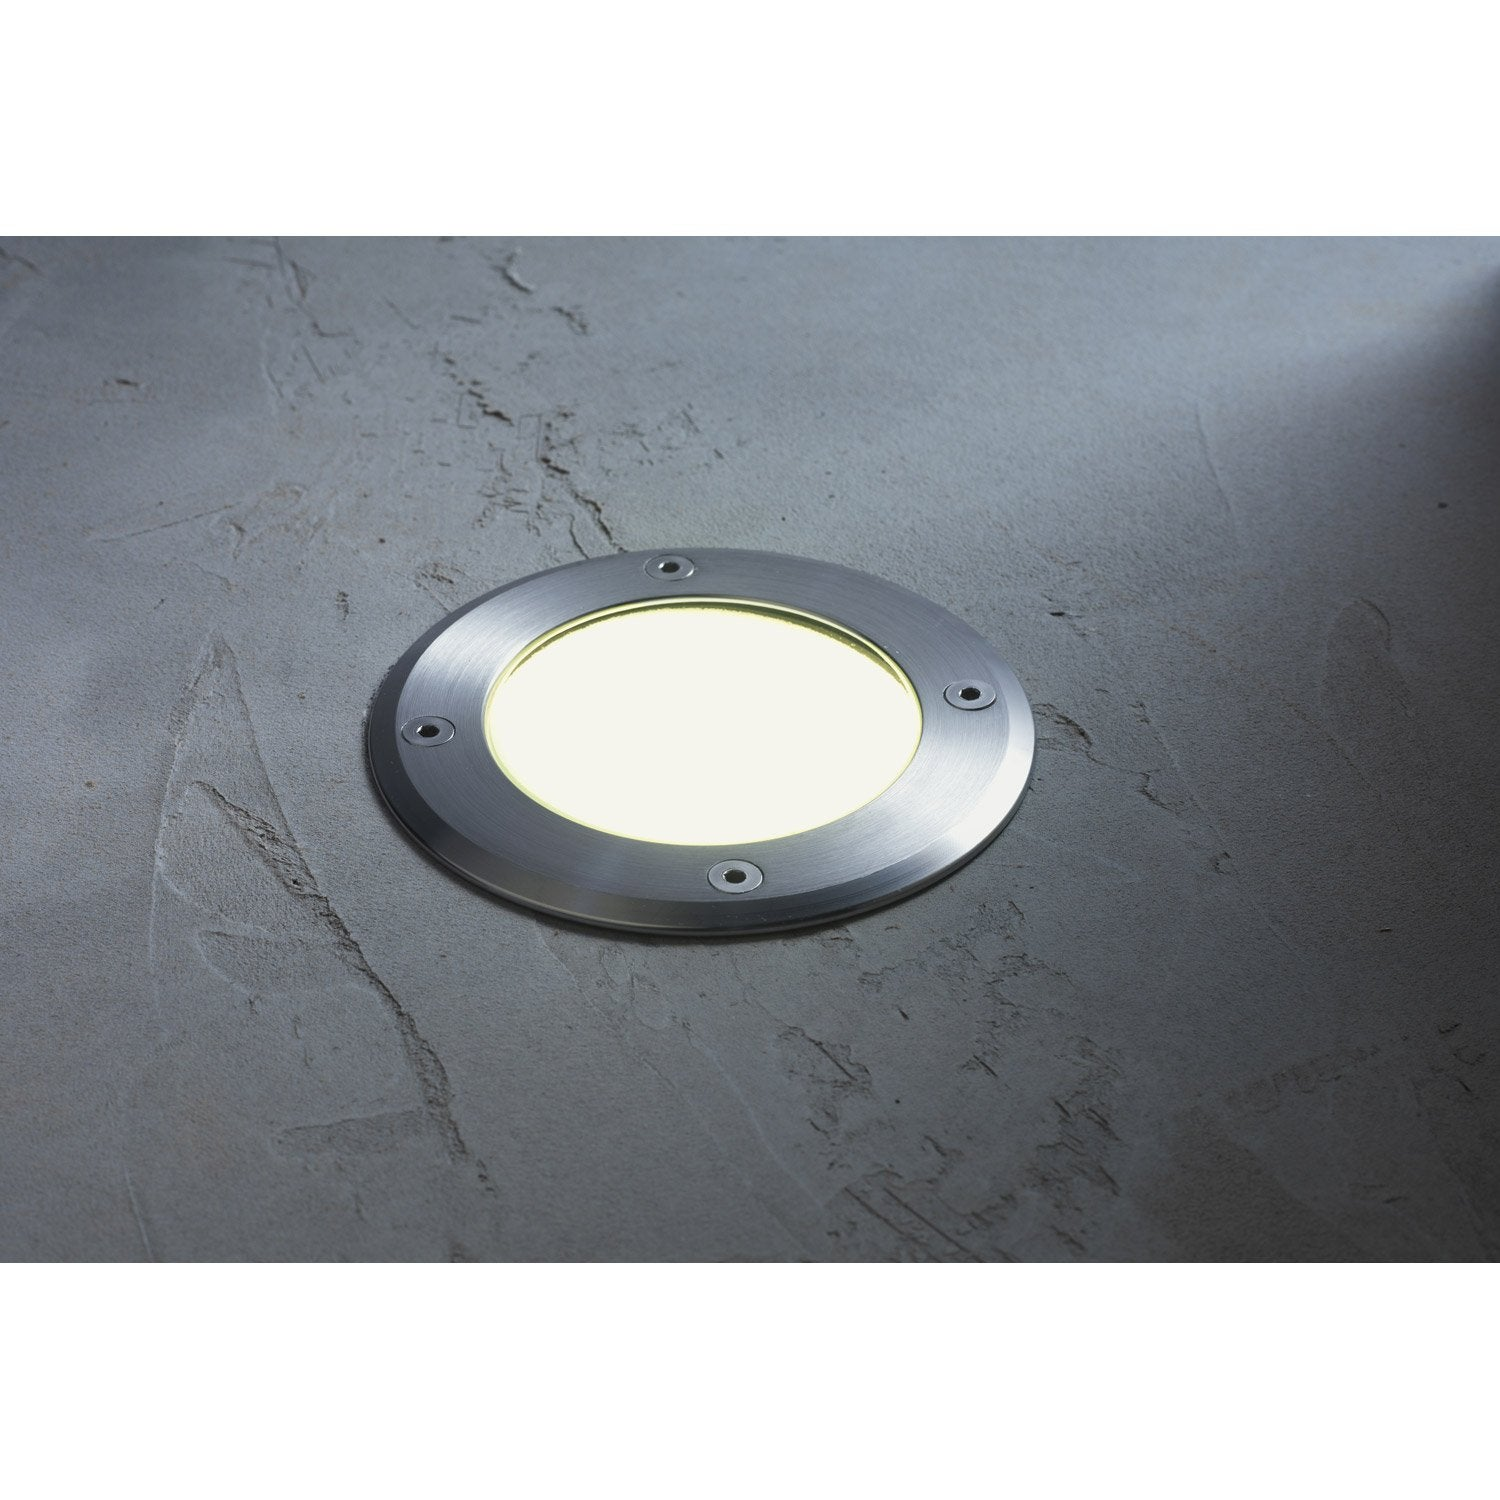 Spot encastrer ext rieur d troit acier inoxydable for Spot led encastrable exterieur terrasse